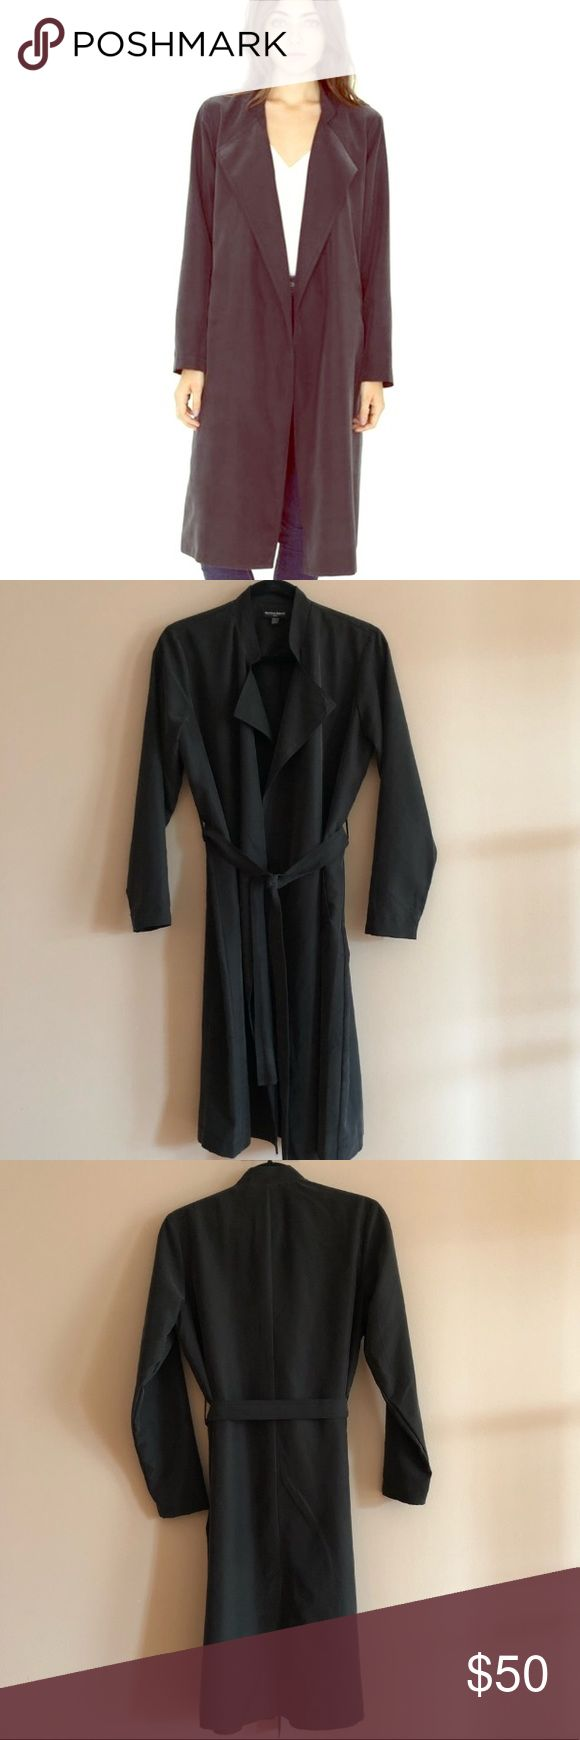 ☀️NWOT American Apparel Dylan Trench-coat🌙 Purchased new from posher. No longer available online. Excellent condition. Charcoal in color. Tried it on when it arrived and felt like I couldn't pull it off. Really sad to see it go 😩 American Apparel Jackets & Coats Trench Coats